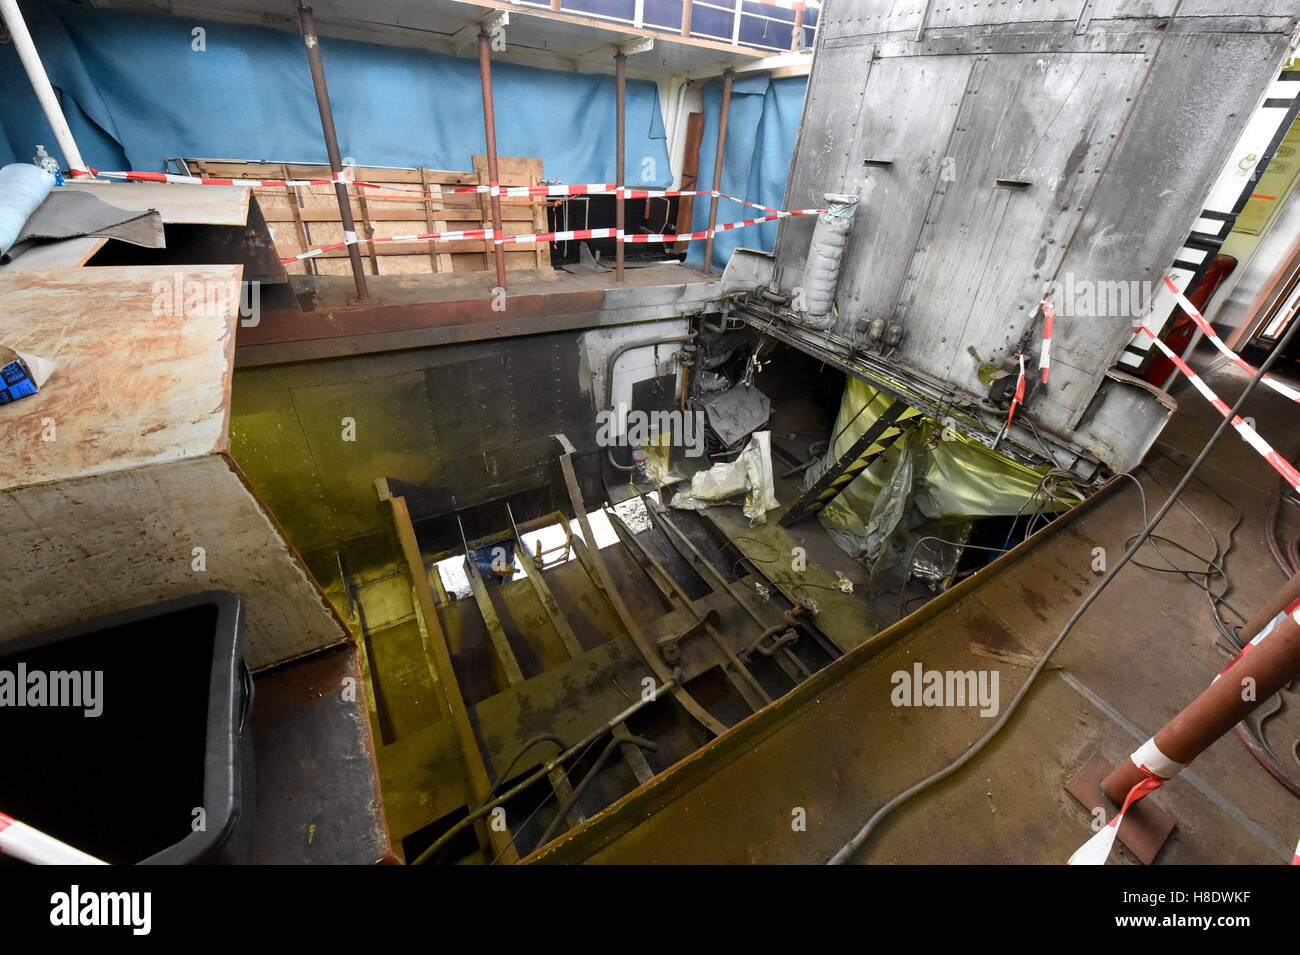 Husum, Germany. 03rd Nov, 2016. The completely gutted boiler room of the museum steamship 'Alexandra' seen - Stock Image